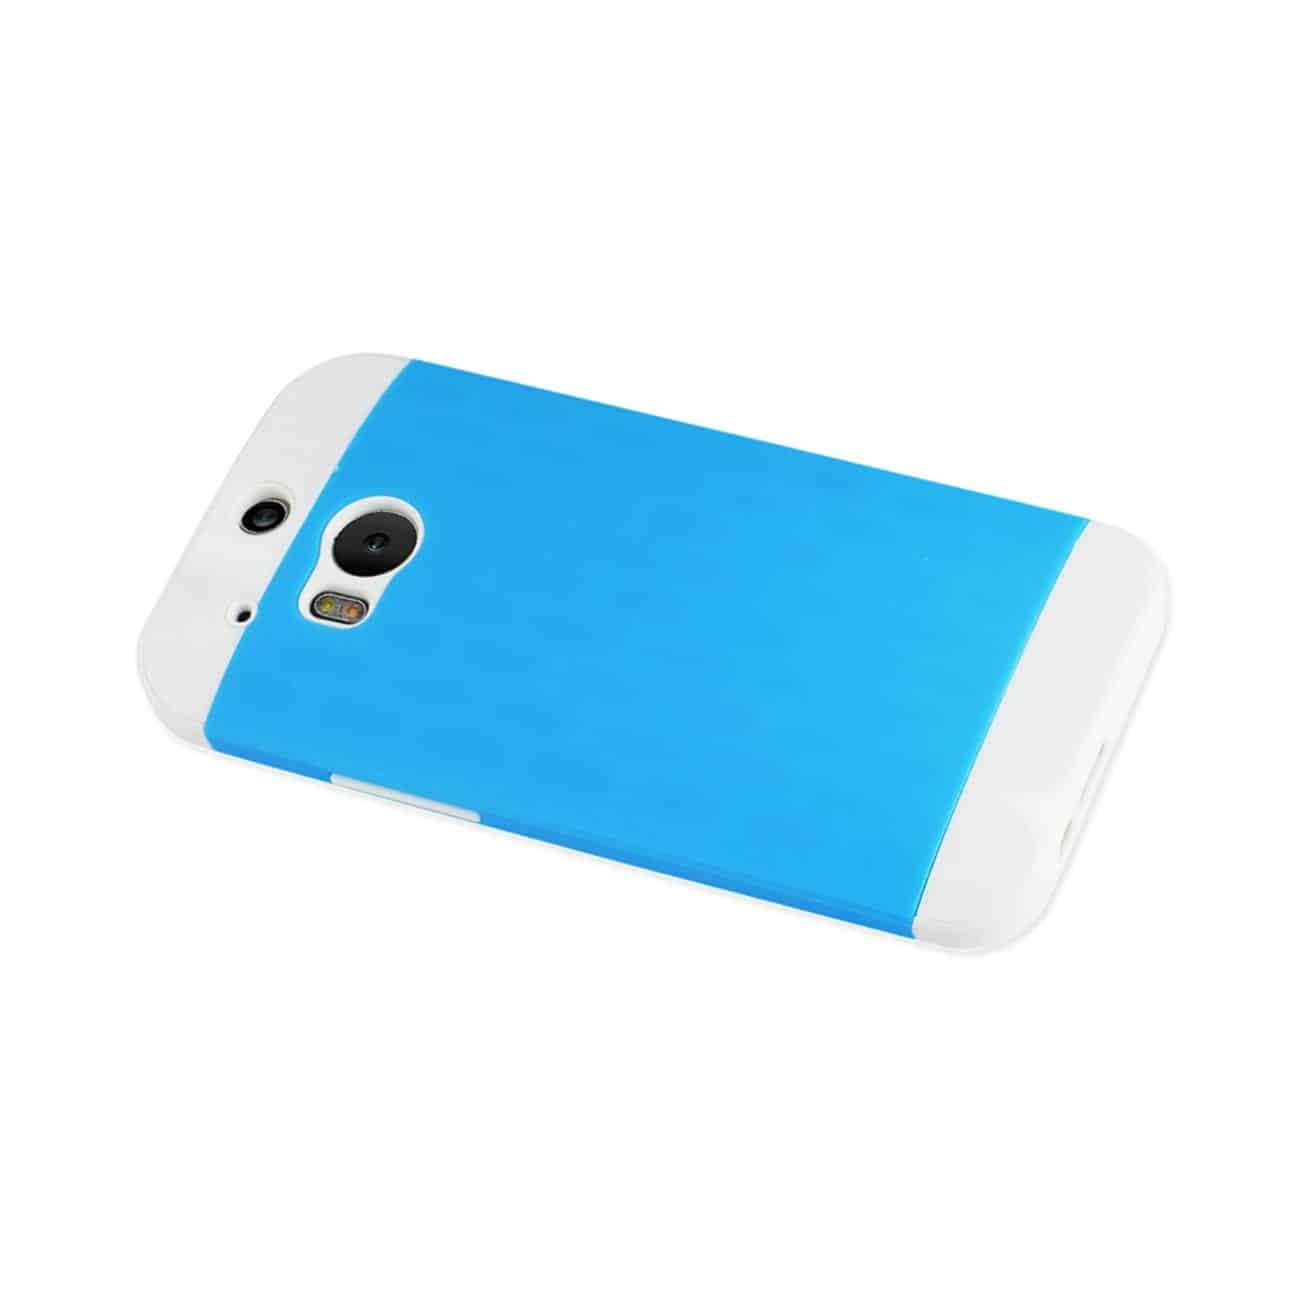 HTC ONE M8 HYBRID CASE WITH CARD HOLDER IN WHITE BLUE